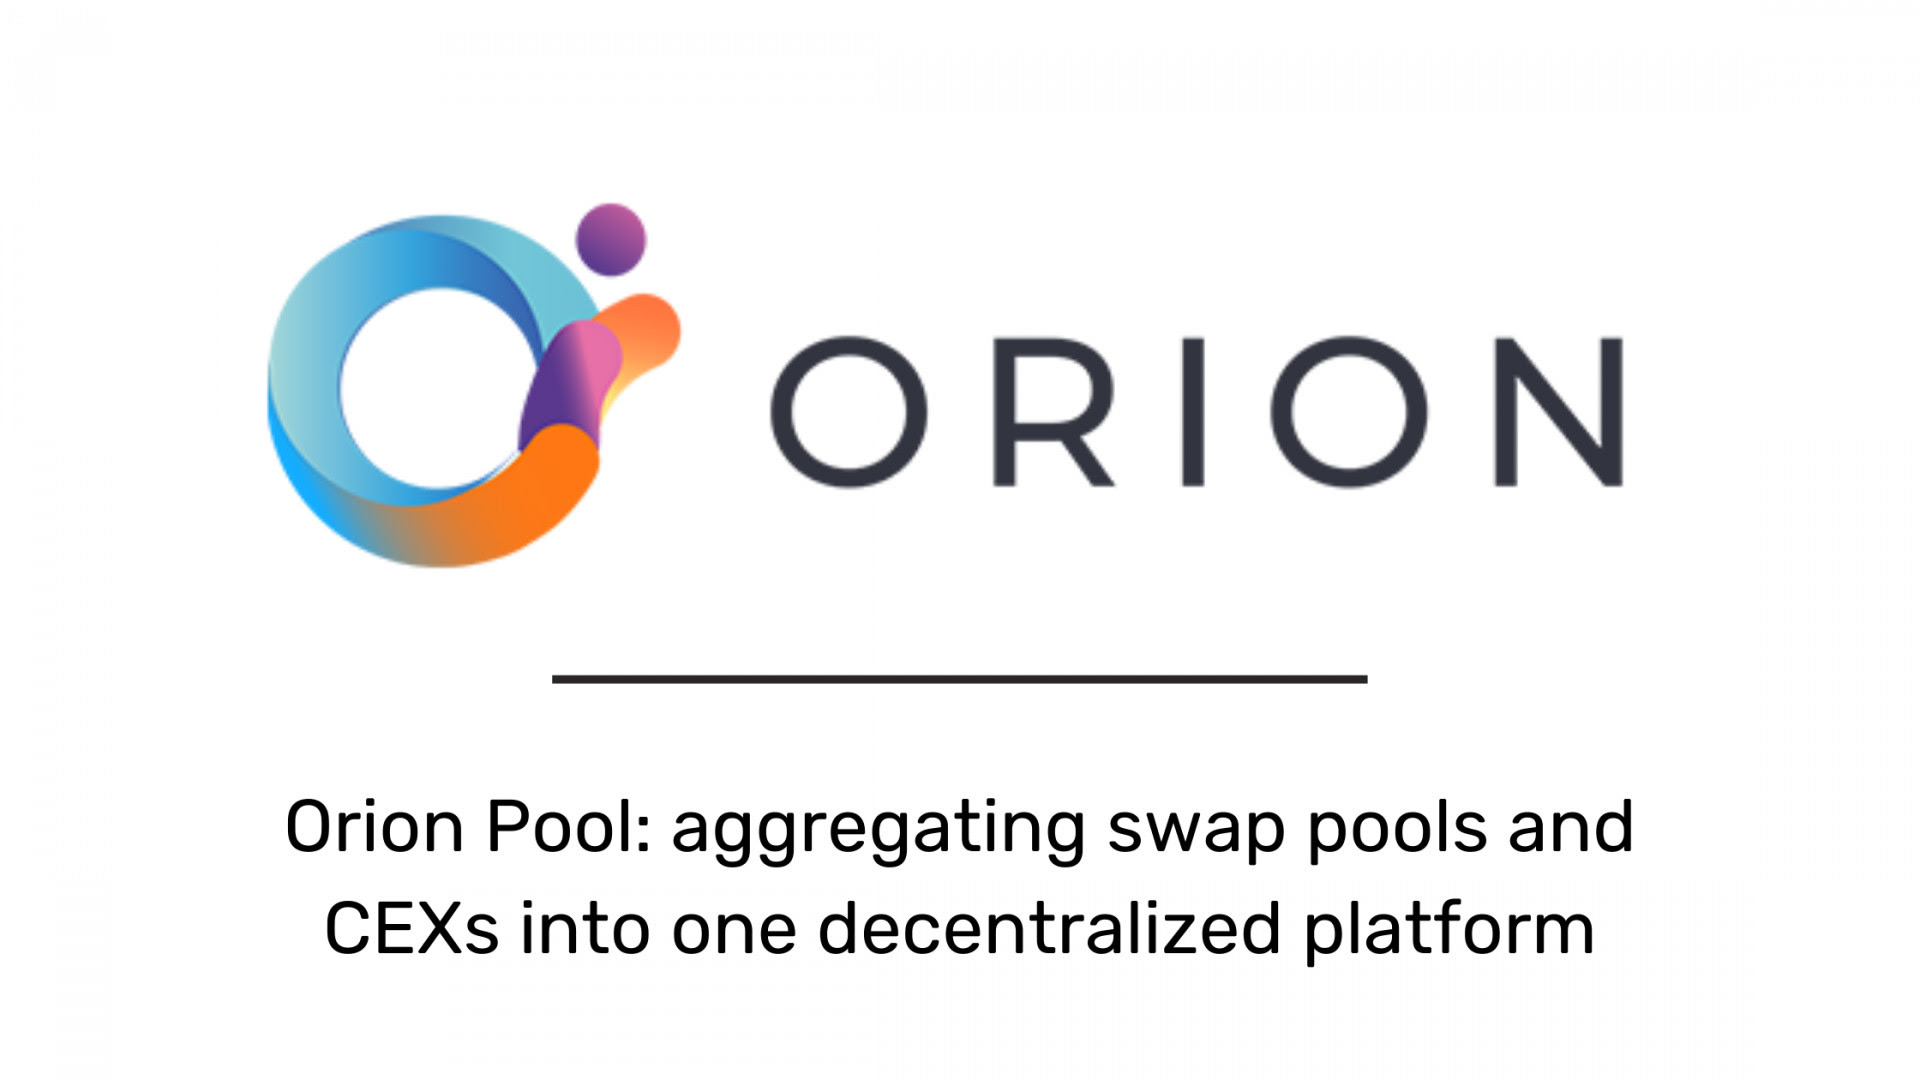 Orion launches AMM solution, Orion Pool: aggregating swap pools and CEXs into one decentralized platform